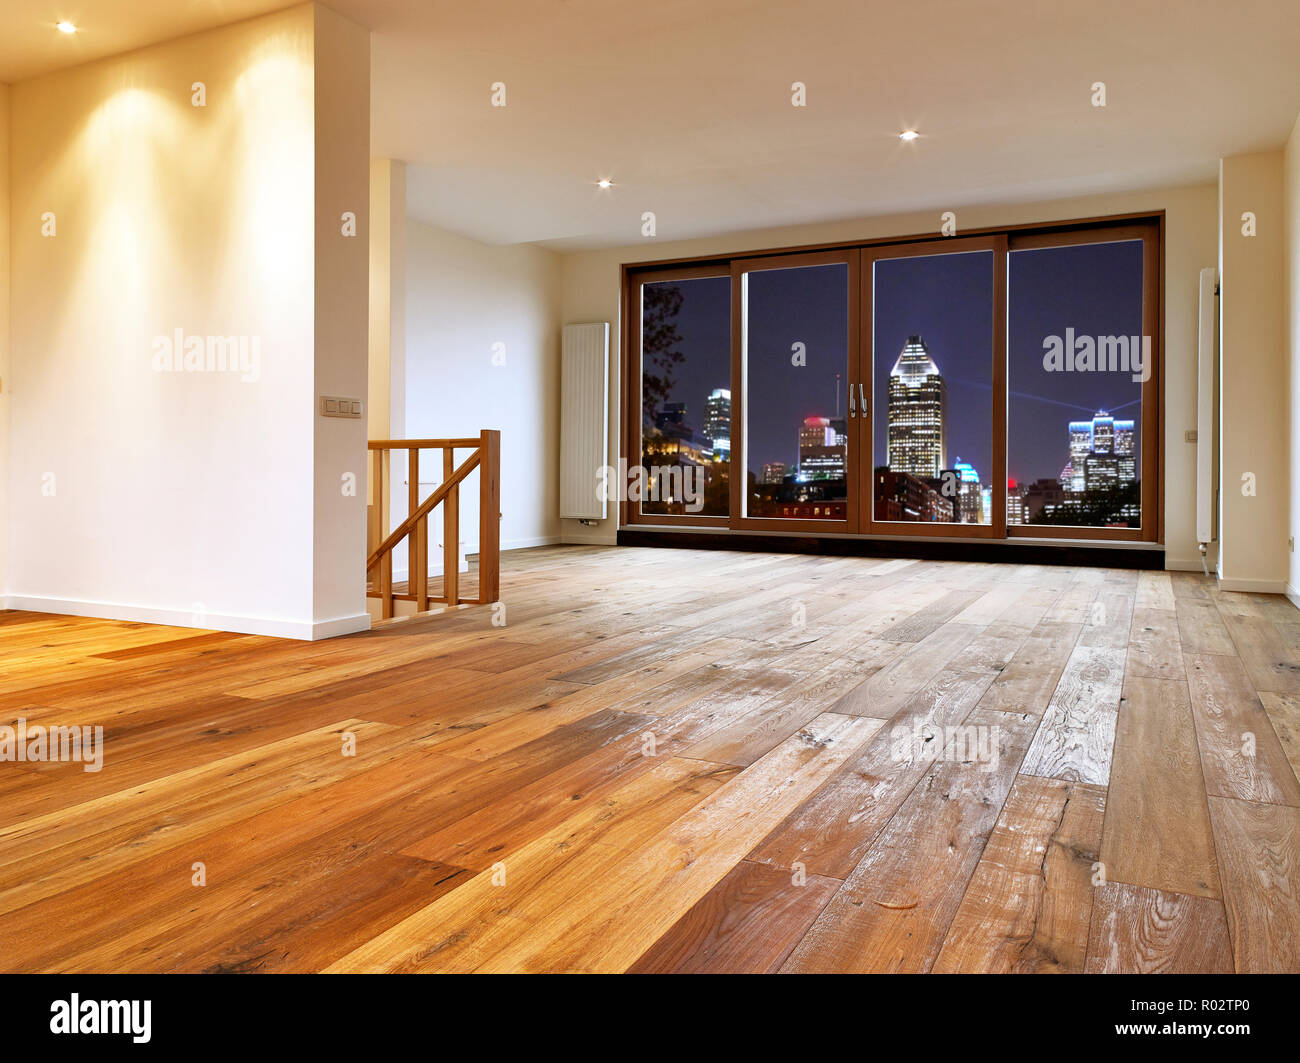 Empty Big Living Room Interior With Wooden Floor And View On Night City  Lights